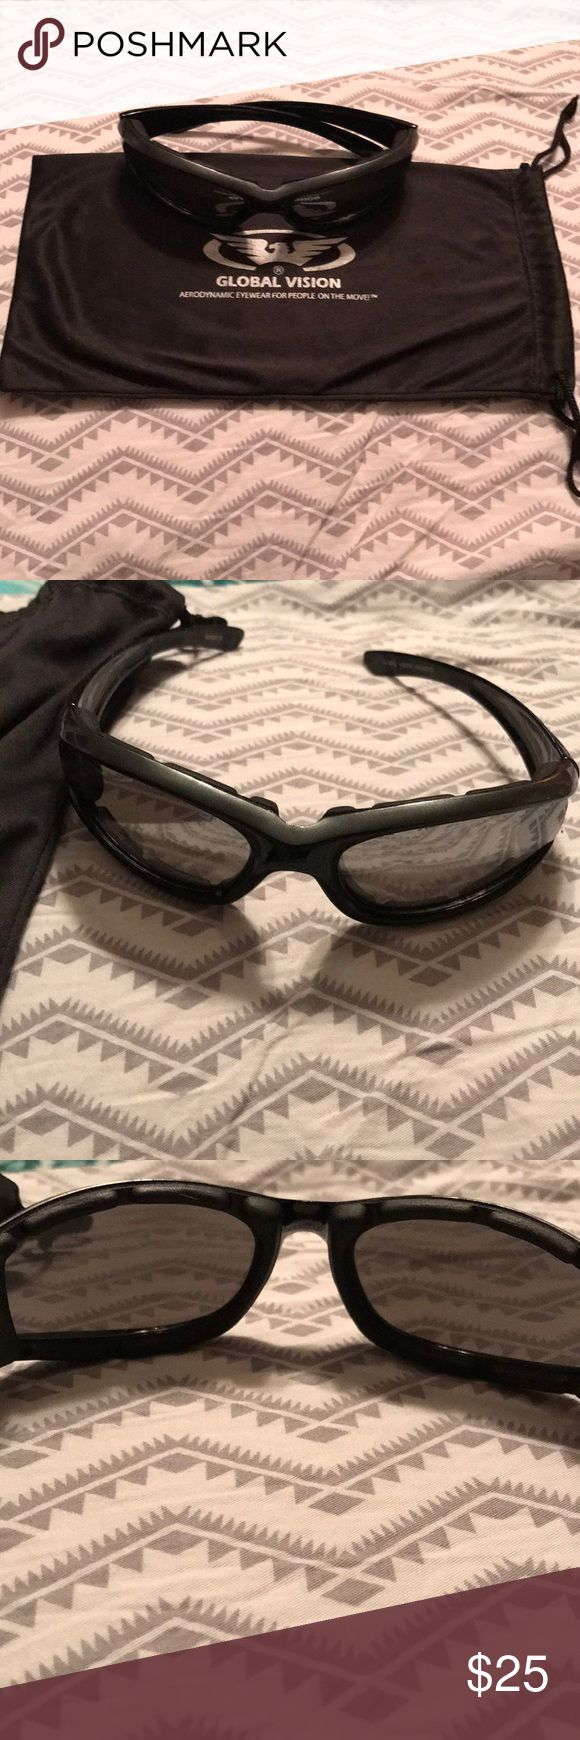 Global Vision Sunglasses 😎 Men's sunglasses 🕶. Really nice and has padding around inside so they are comfortable when put on around 👀 as seen in photo. New Global Vision Accessories Glasses